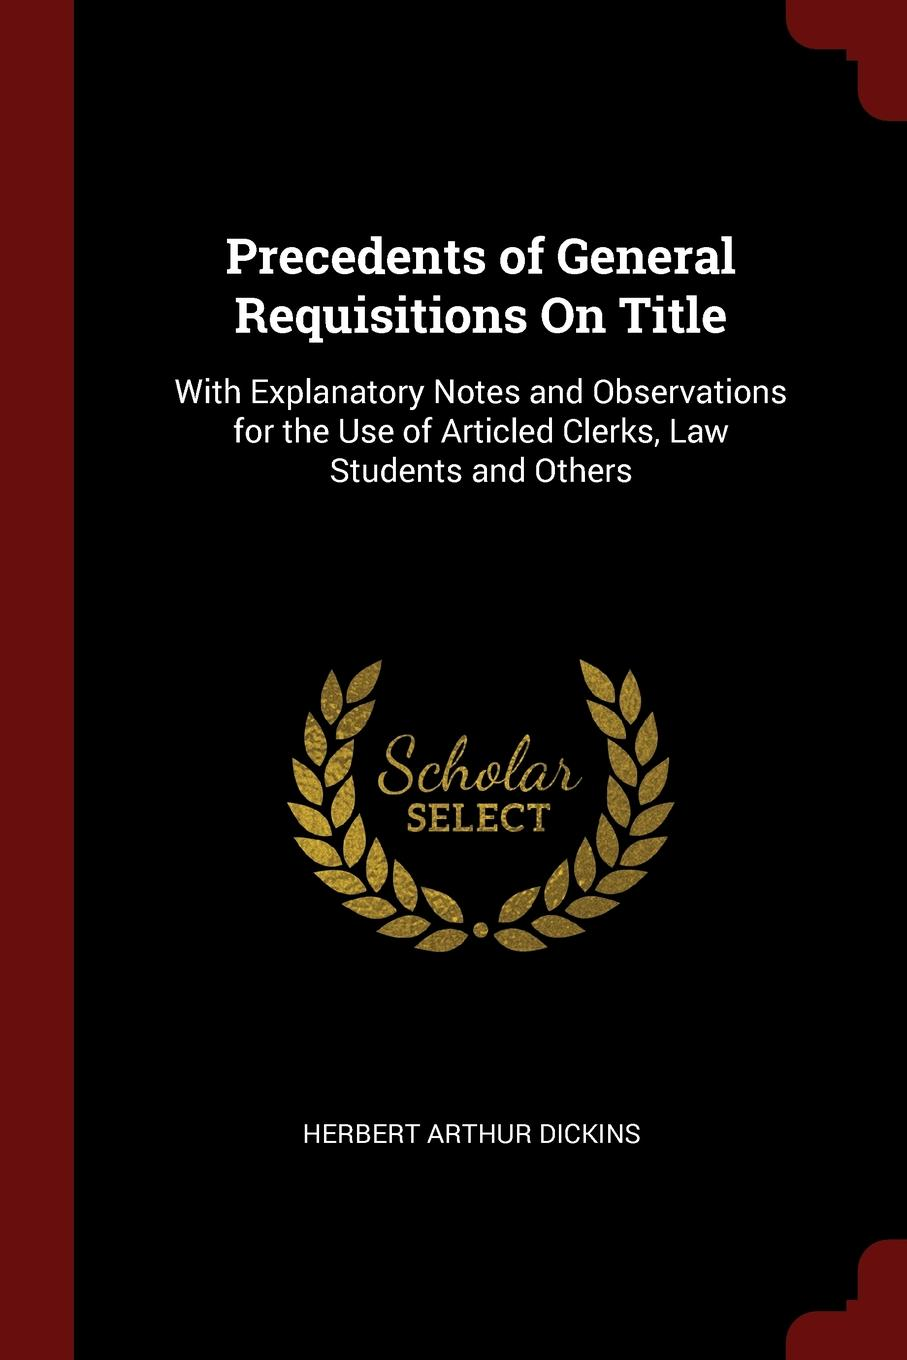 Herbert Arthur Dickins Precedents of General Requisitions On Title. With Explanatory Notes and Observations for the Use of Articled Clerks, Law Students and Others